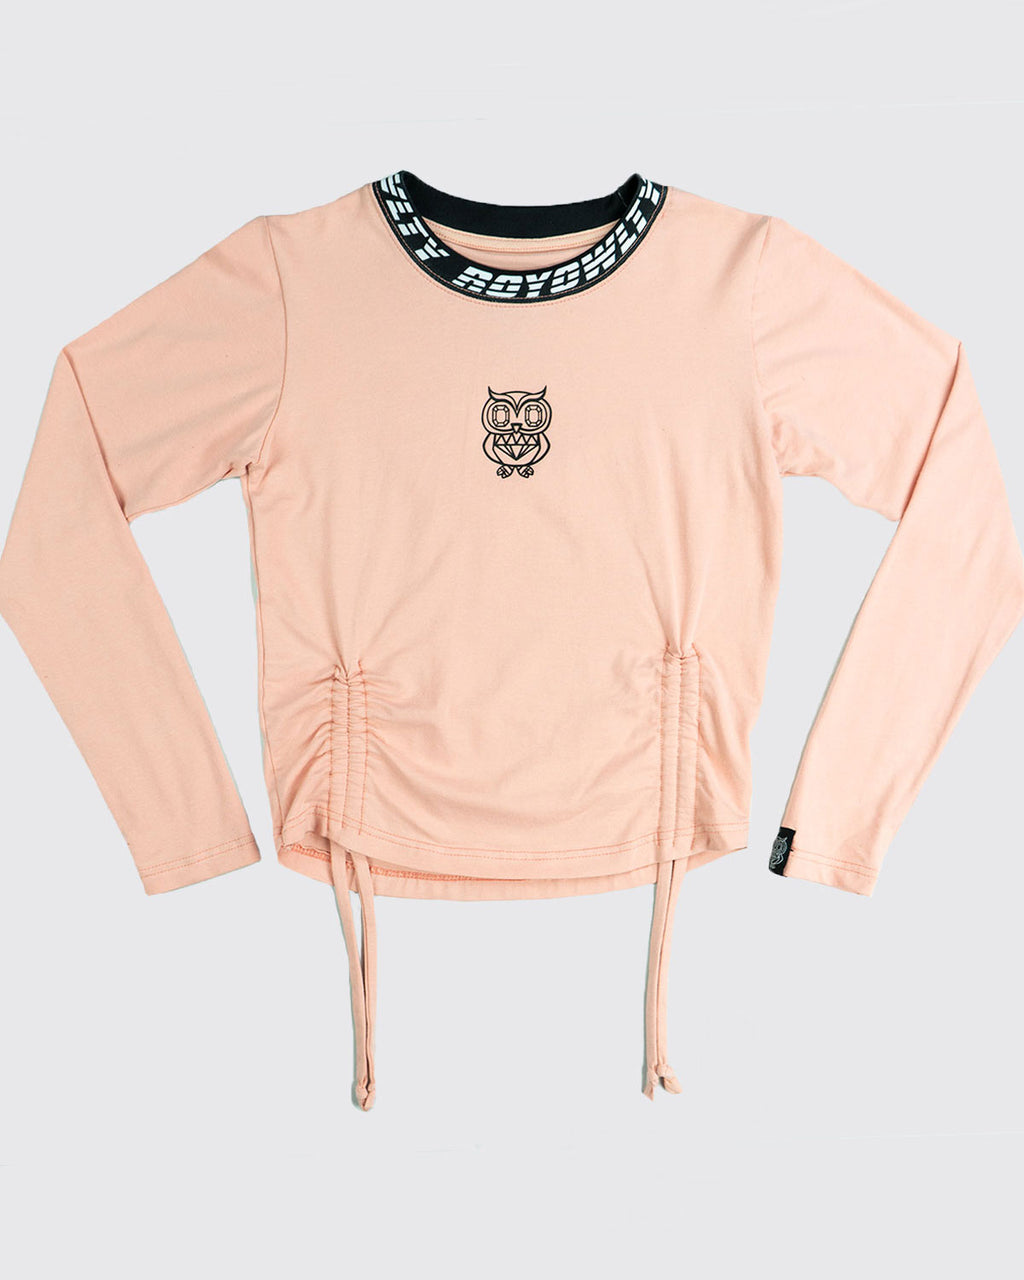 Neck Print Crop Tee with 3D logo-long sleeve